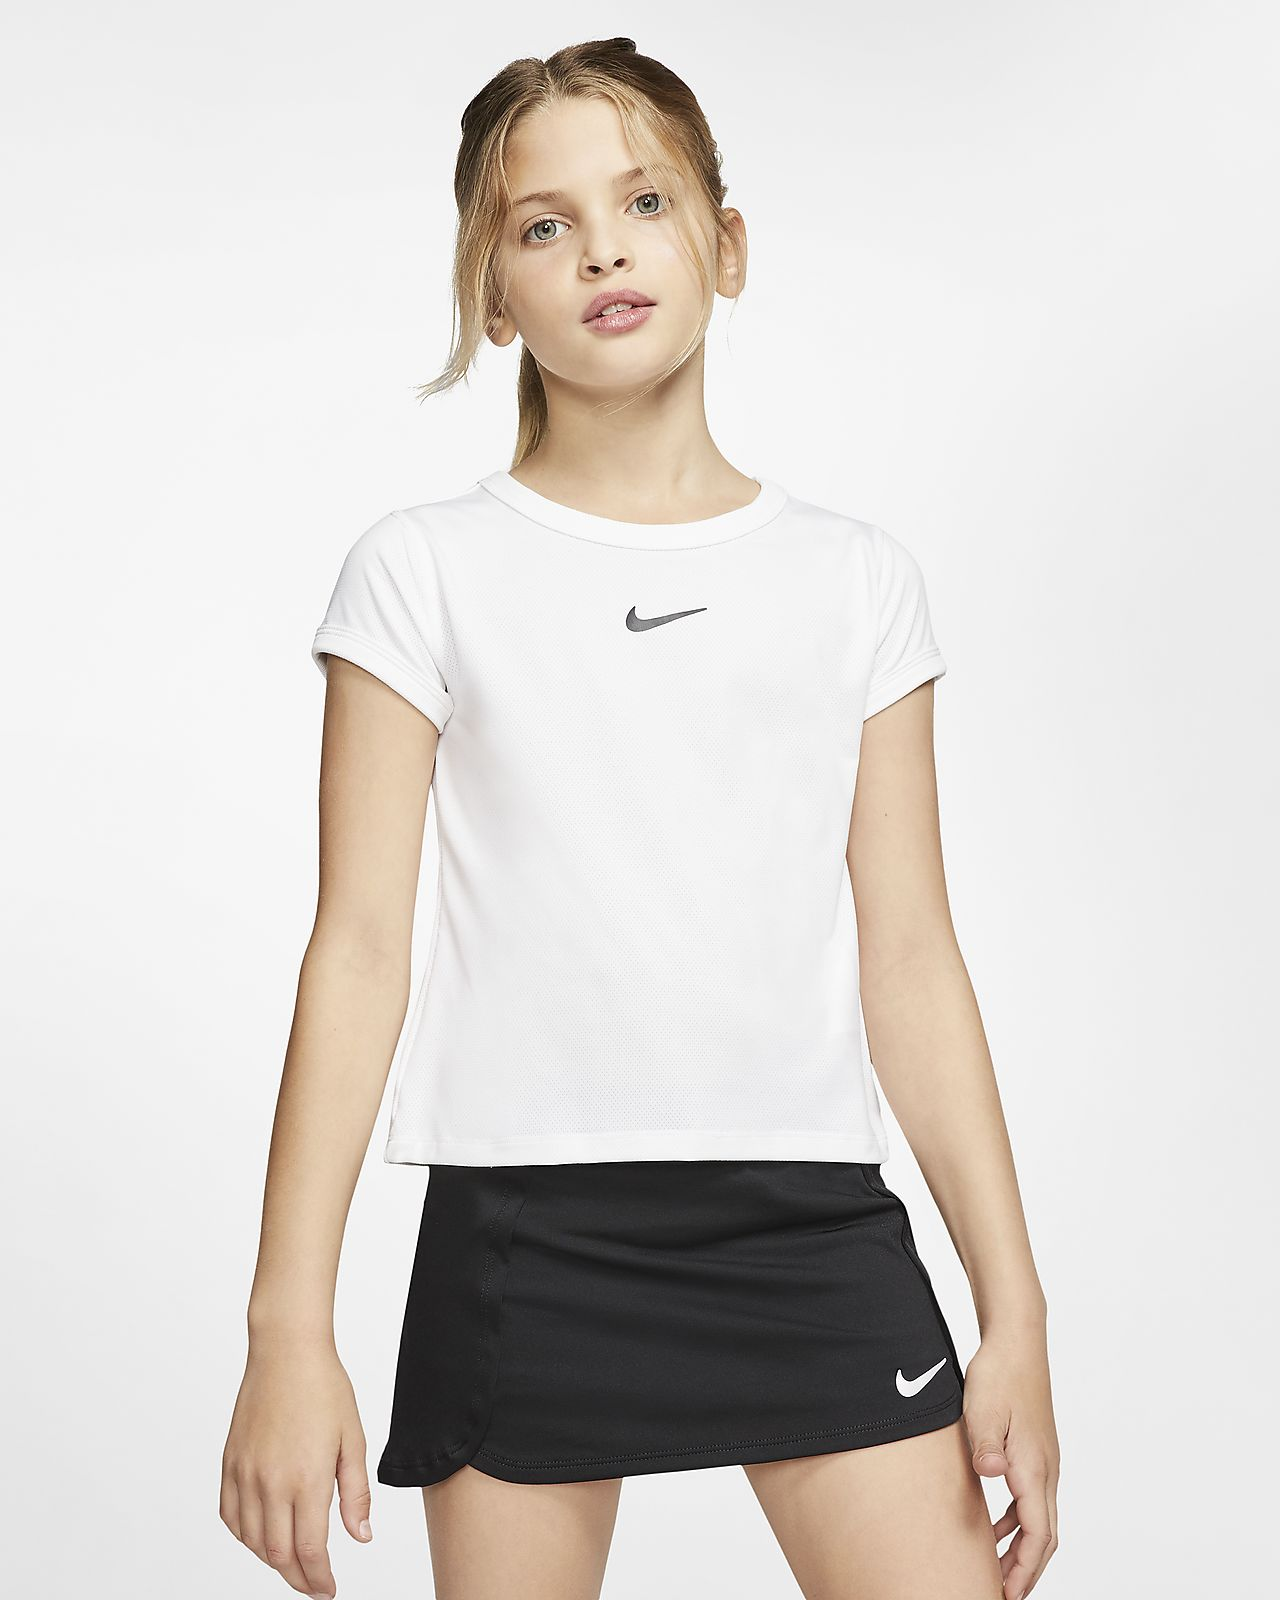 NikeCourt Dri-FIT Girls' Tennis Top